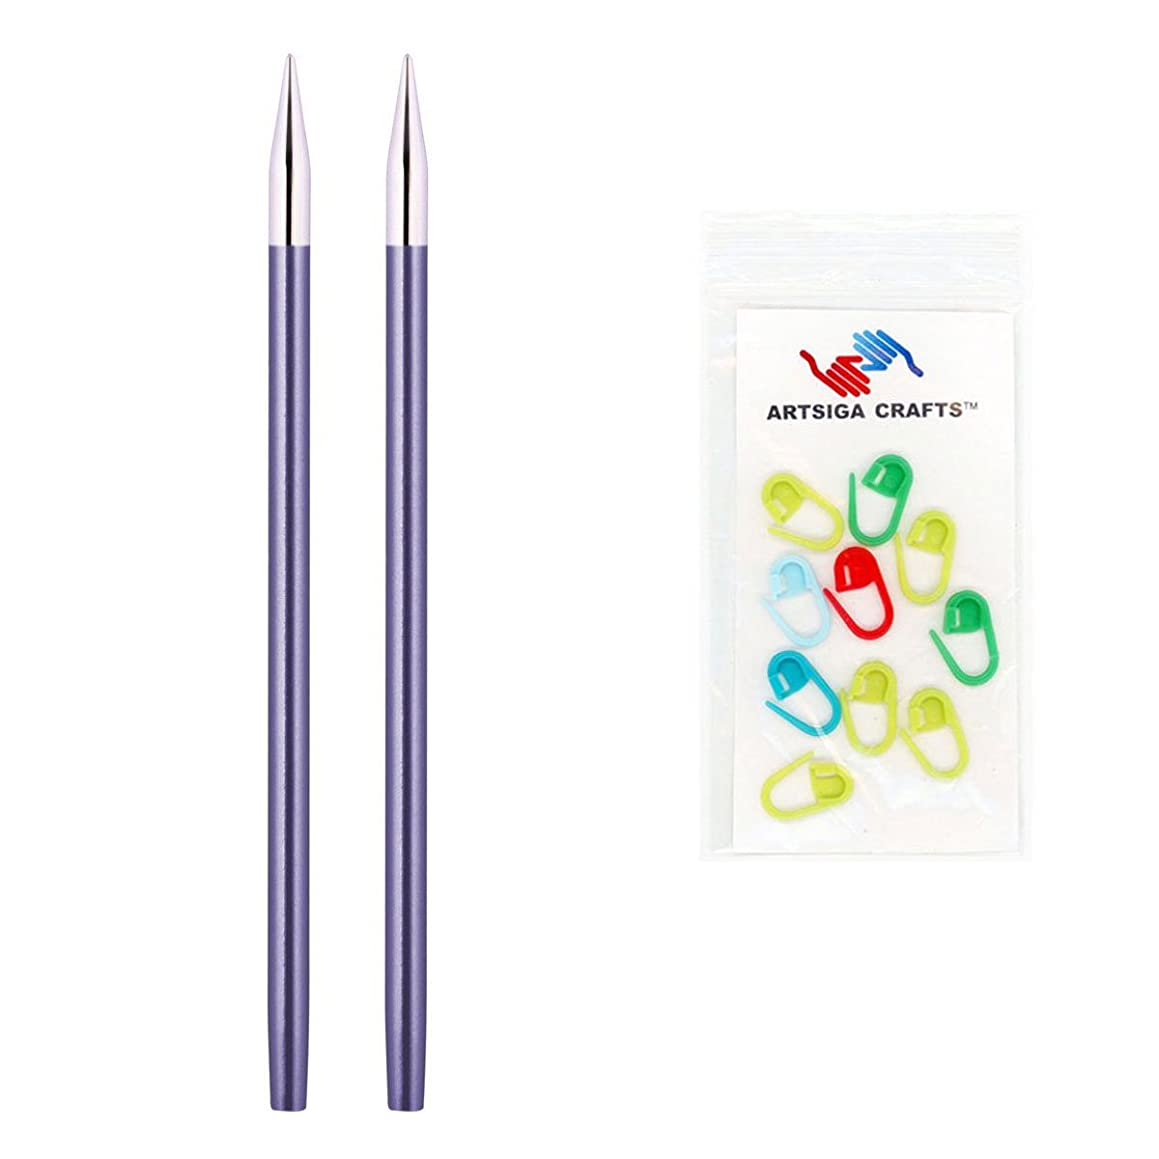 Knitter's Pride Zing Special Interchangeable 3.5in. Knitting Needle Tips Size US 4 (3.5mm) Bundle with 10 Artsiga Crafts Stitch Markers 140231